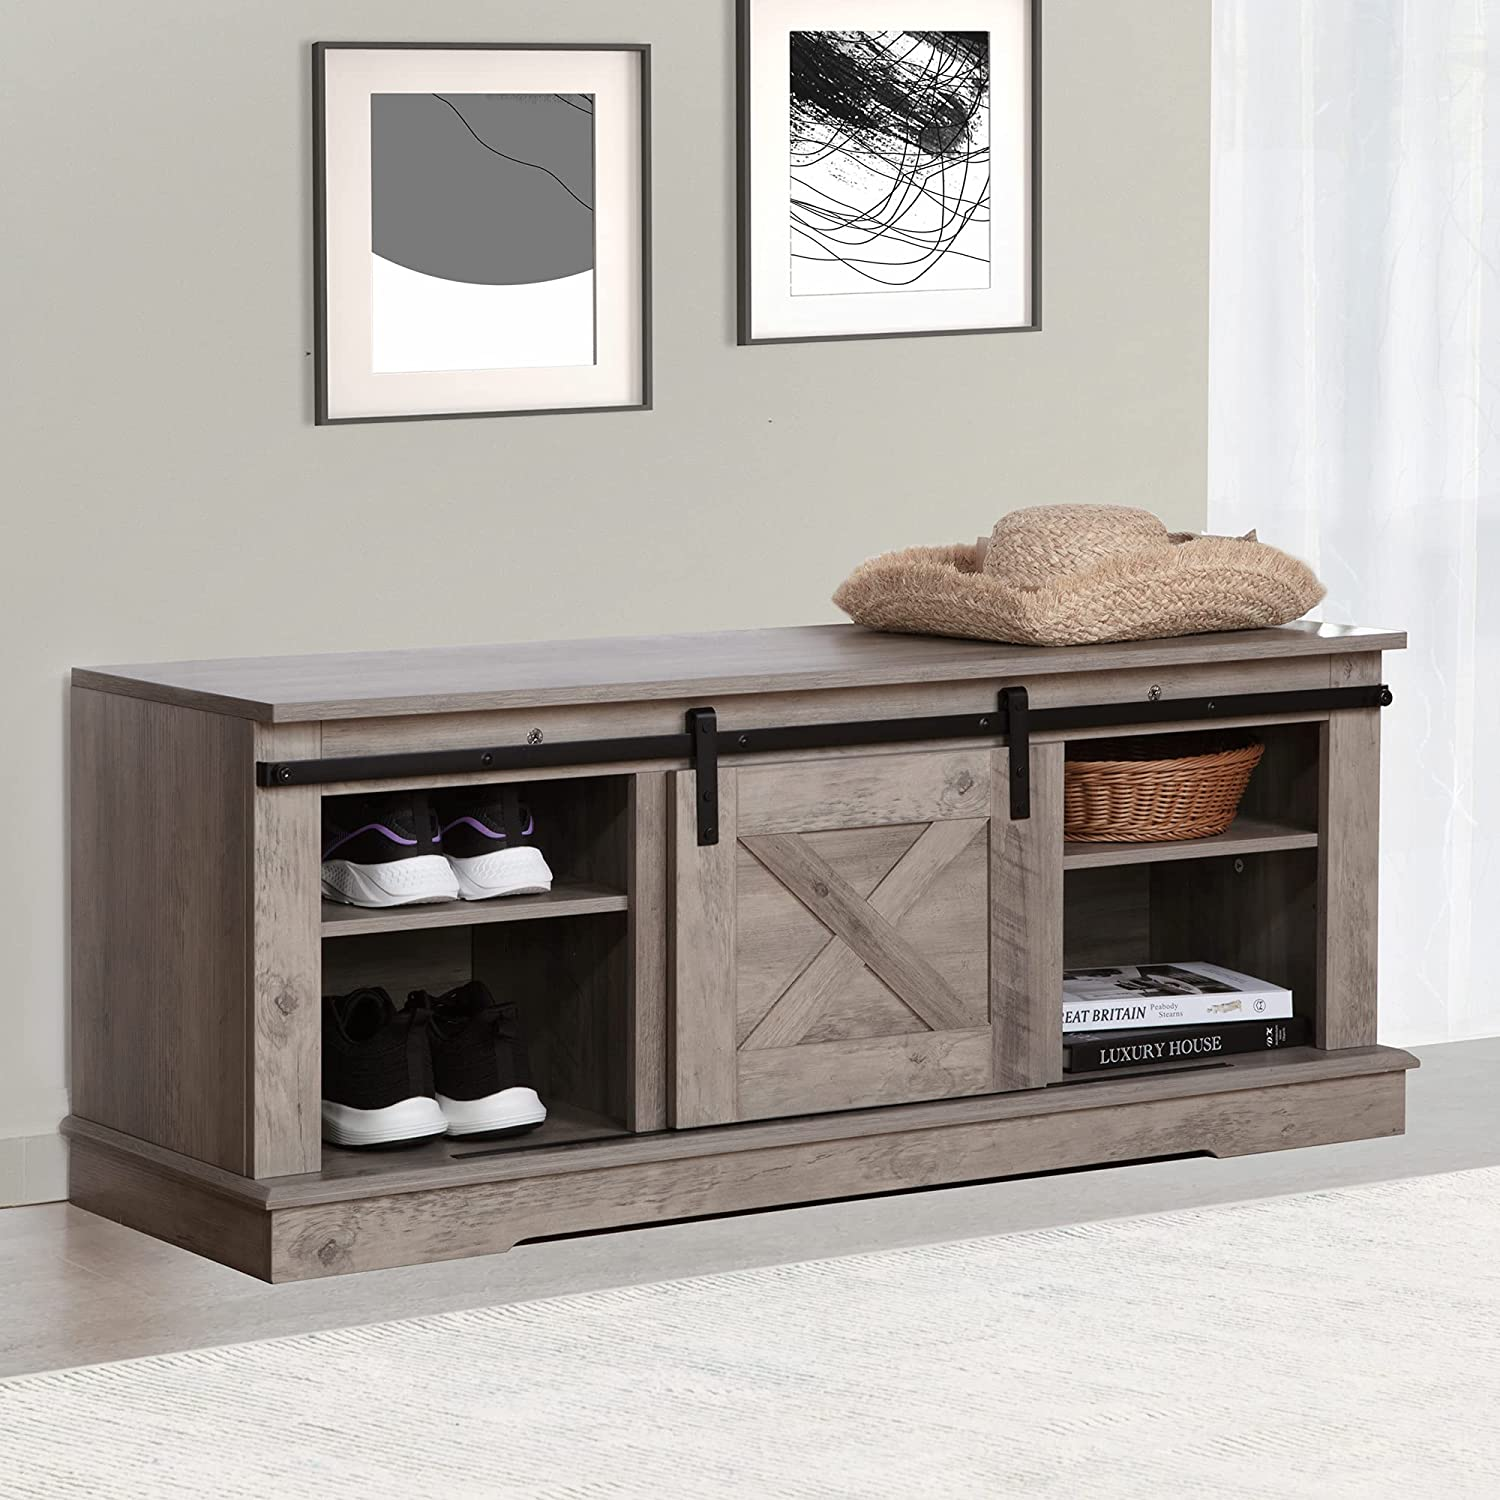 Super beauty product restock quality top Shoe Storage Bench Farmhouse Sliding 67% OFF of fixed price S Barn Entryway Door